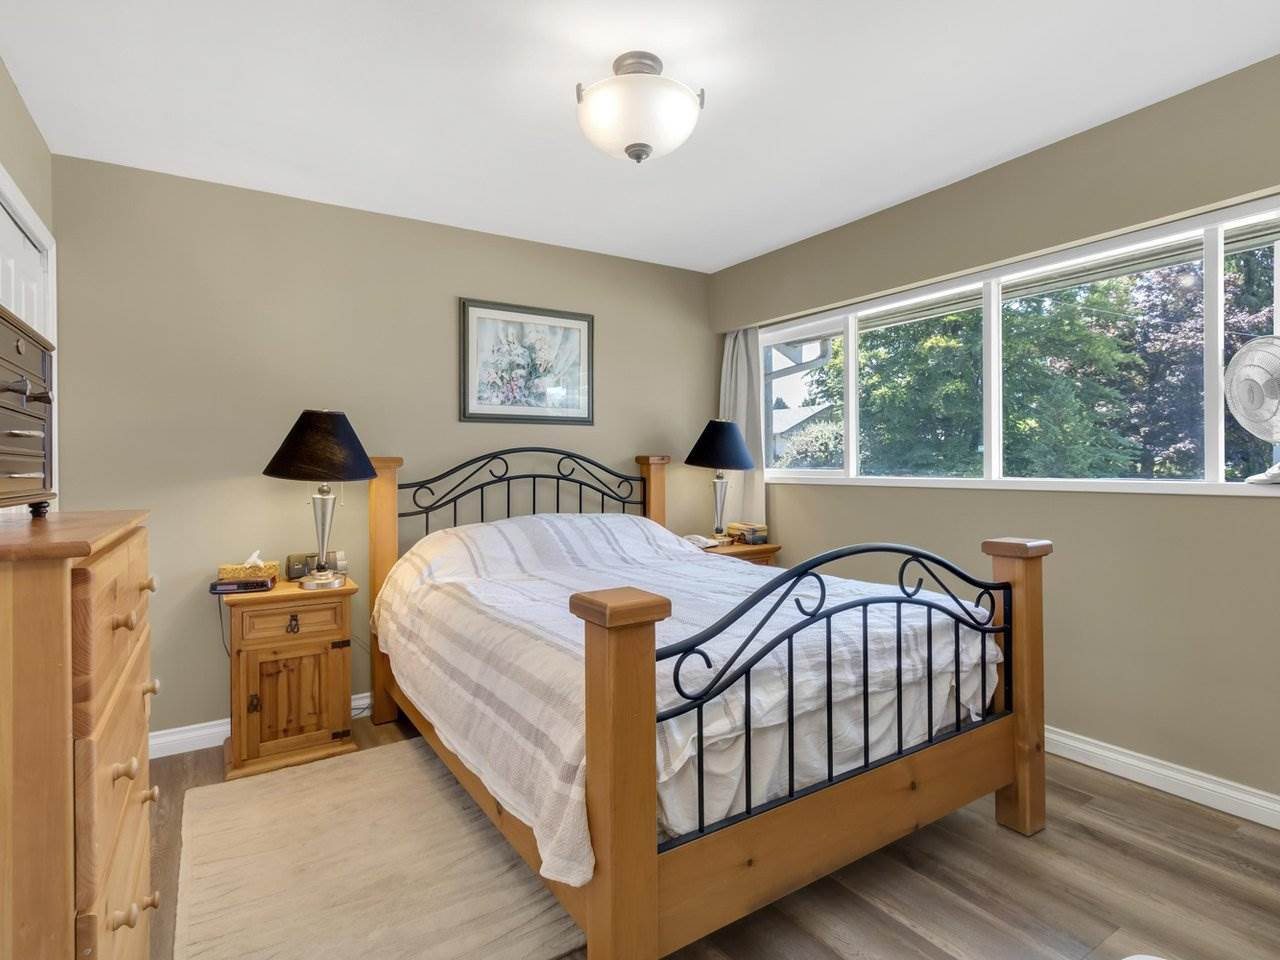 Photo 12: Photos: 943 GATENSBURY Street in Coquitlam: Harbour Chines House for sale : MLS®# R2499202